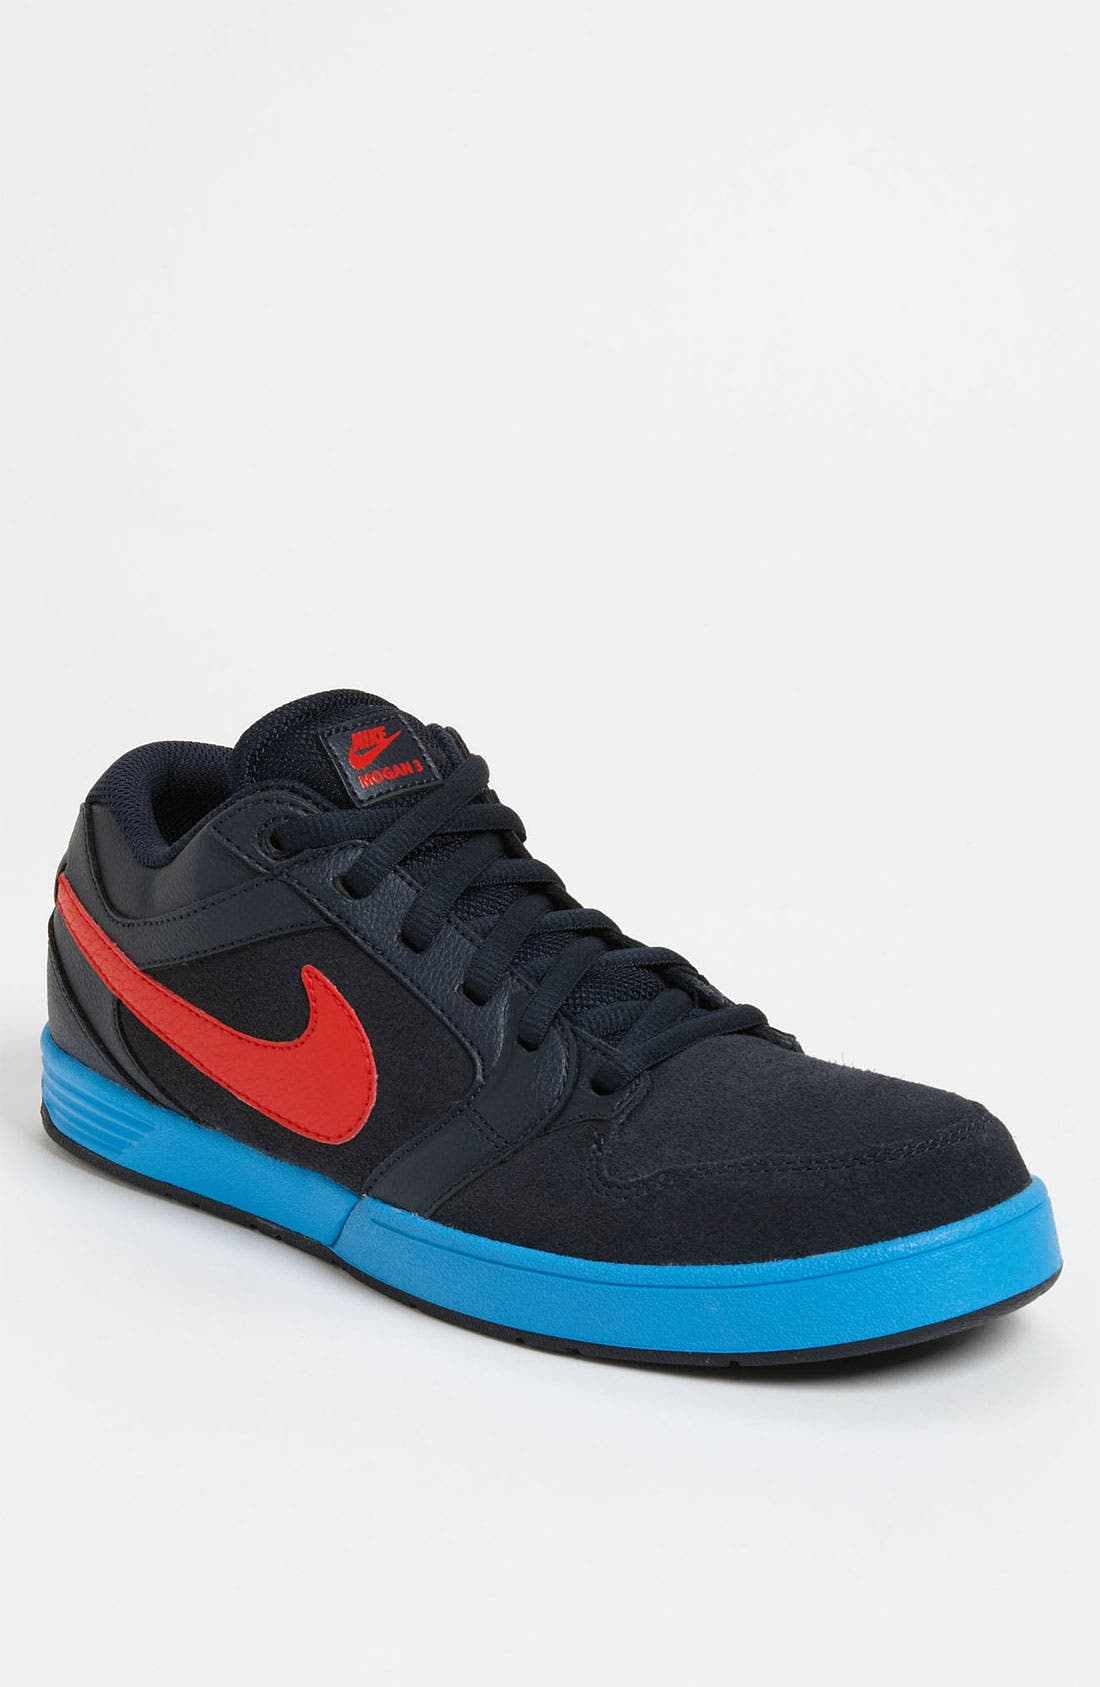 Alternate Image 1 Selected - Nike 'Mogan 3' Sneaker (Men) (Online Only)